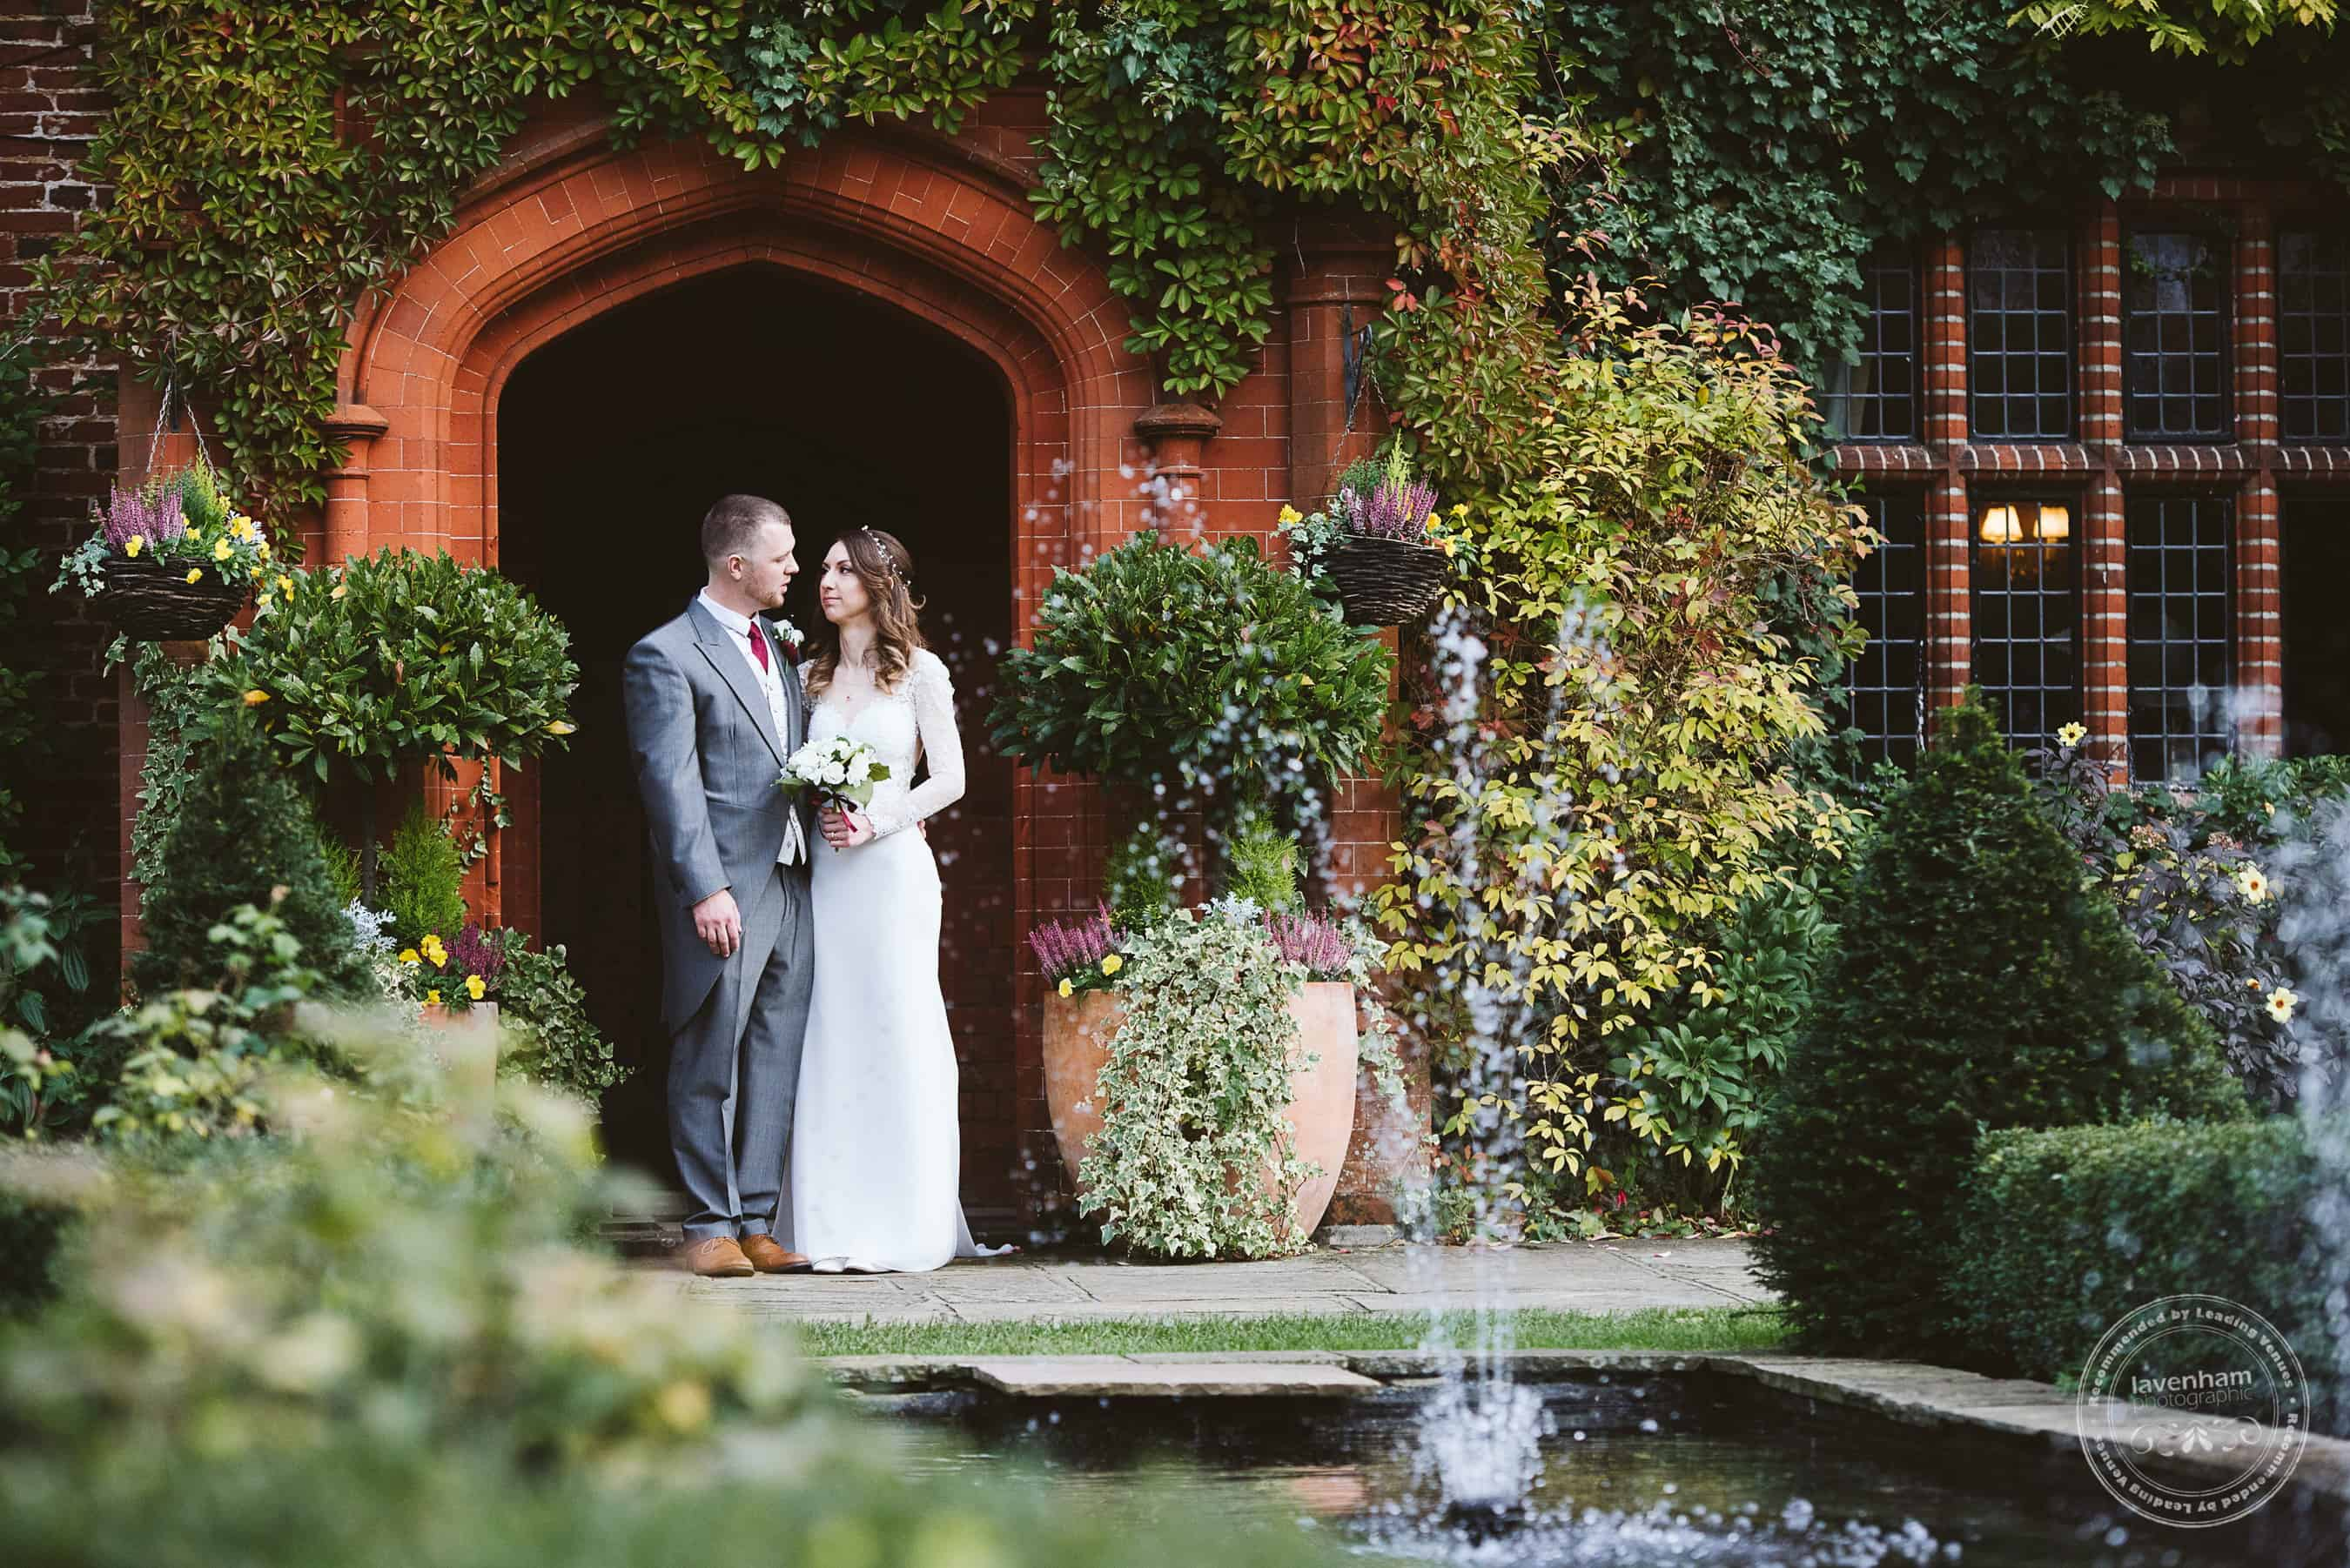 041118 Woodhall Manor Wedding Photography by Lavenham Photographic 073